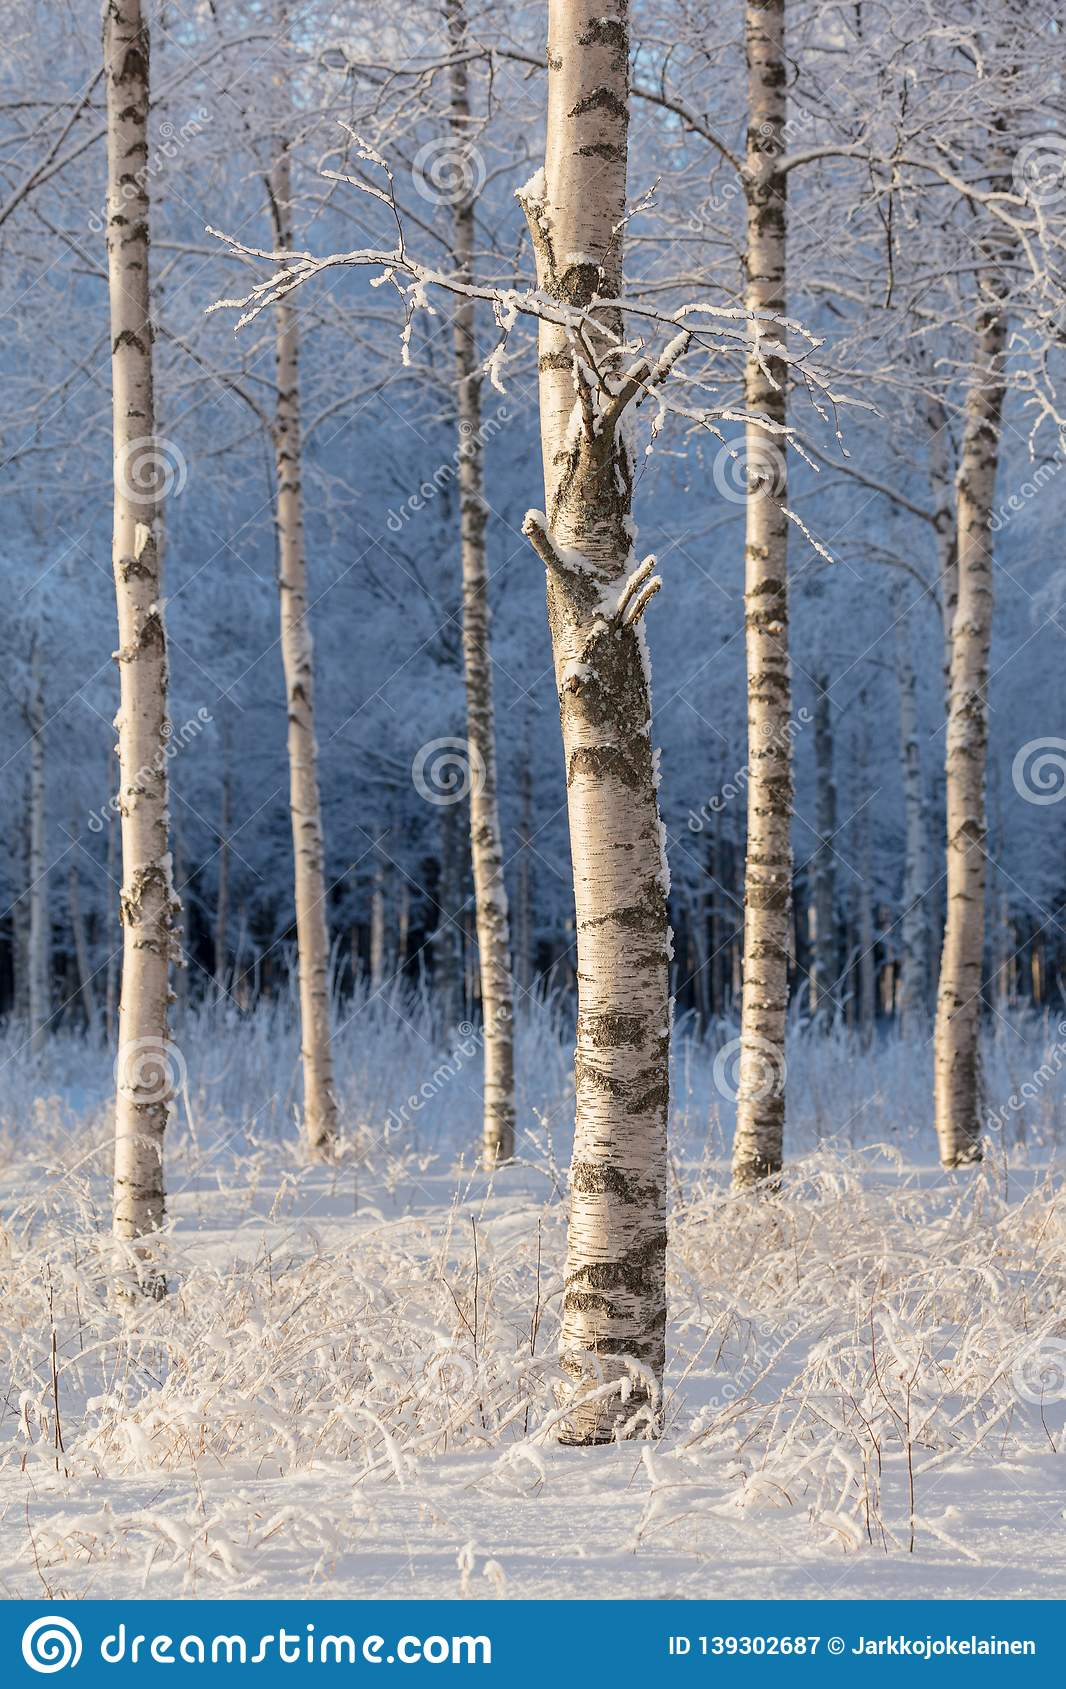 Birch trees on a cold winter day